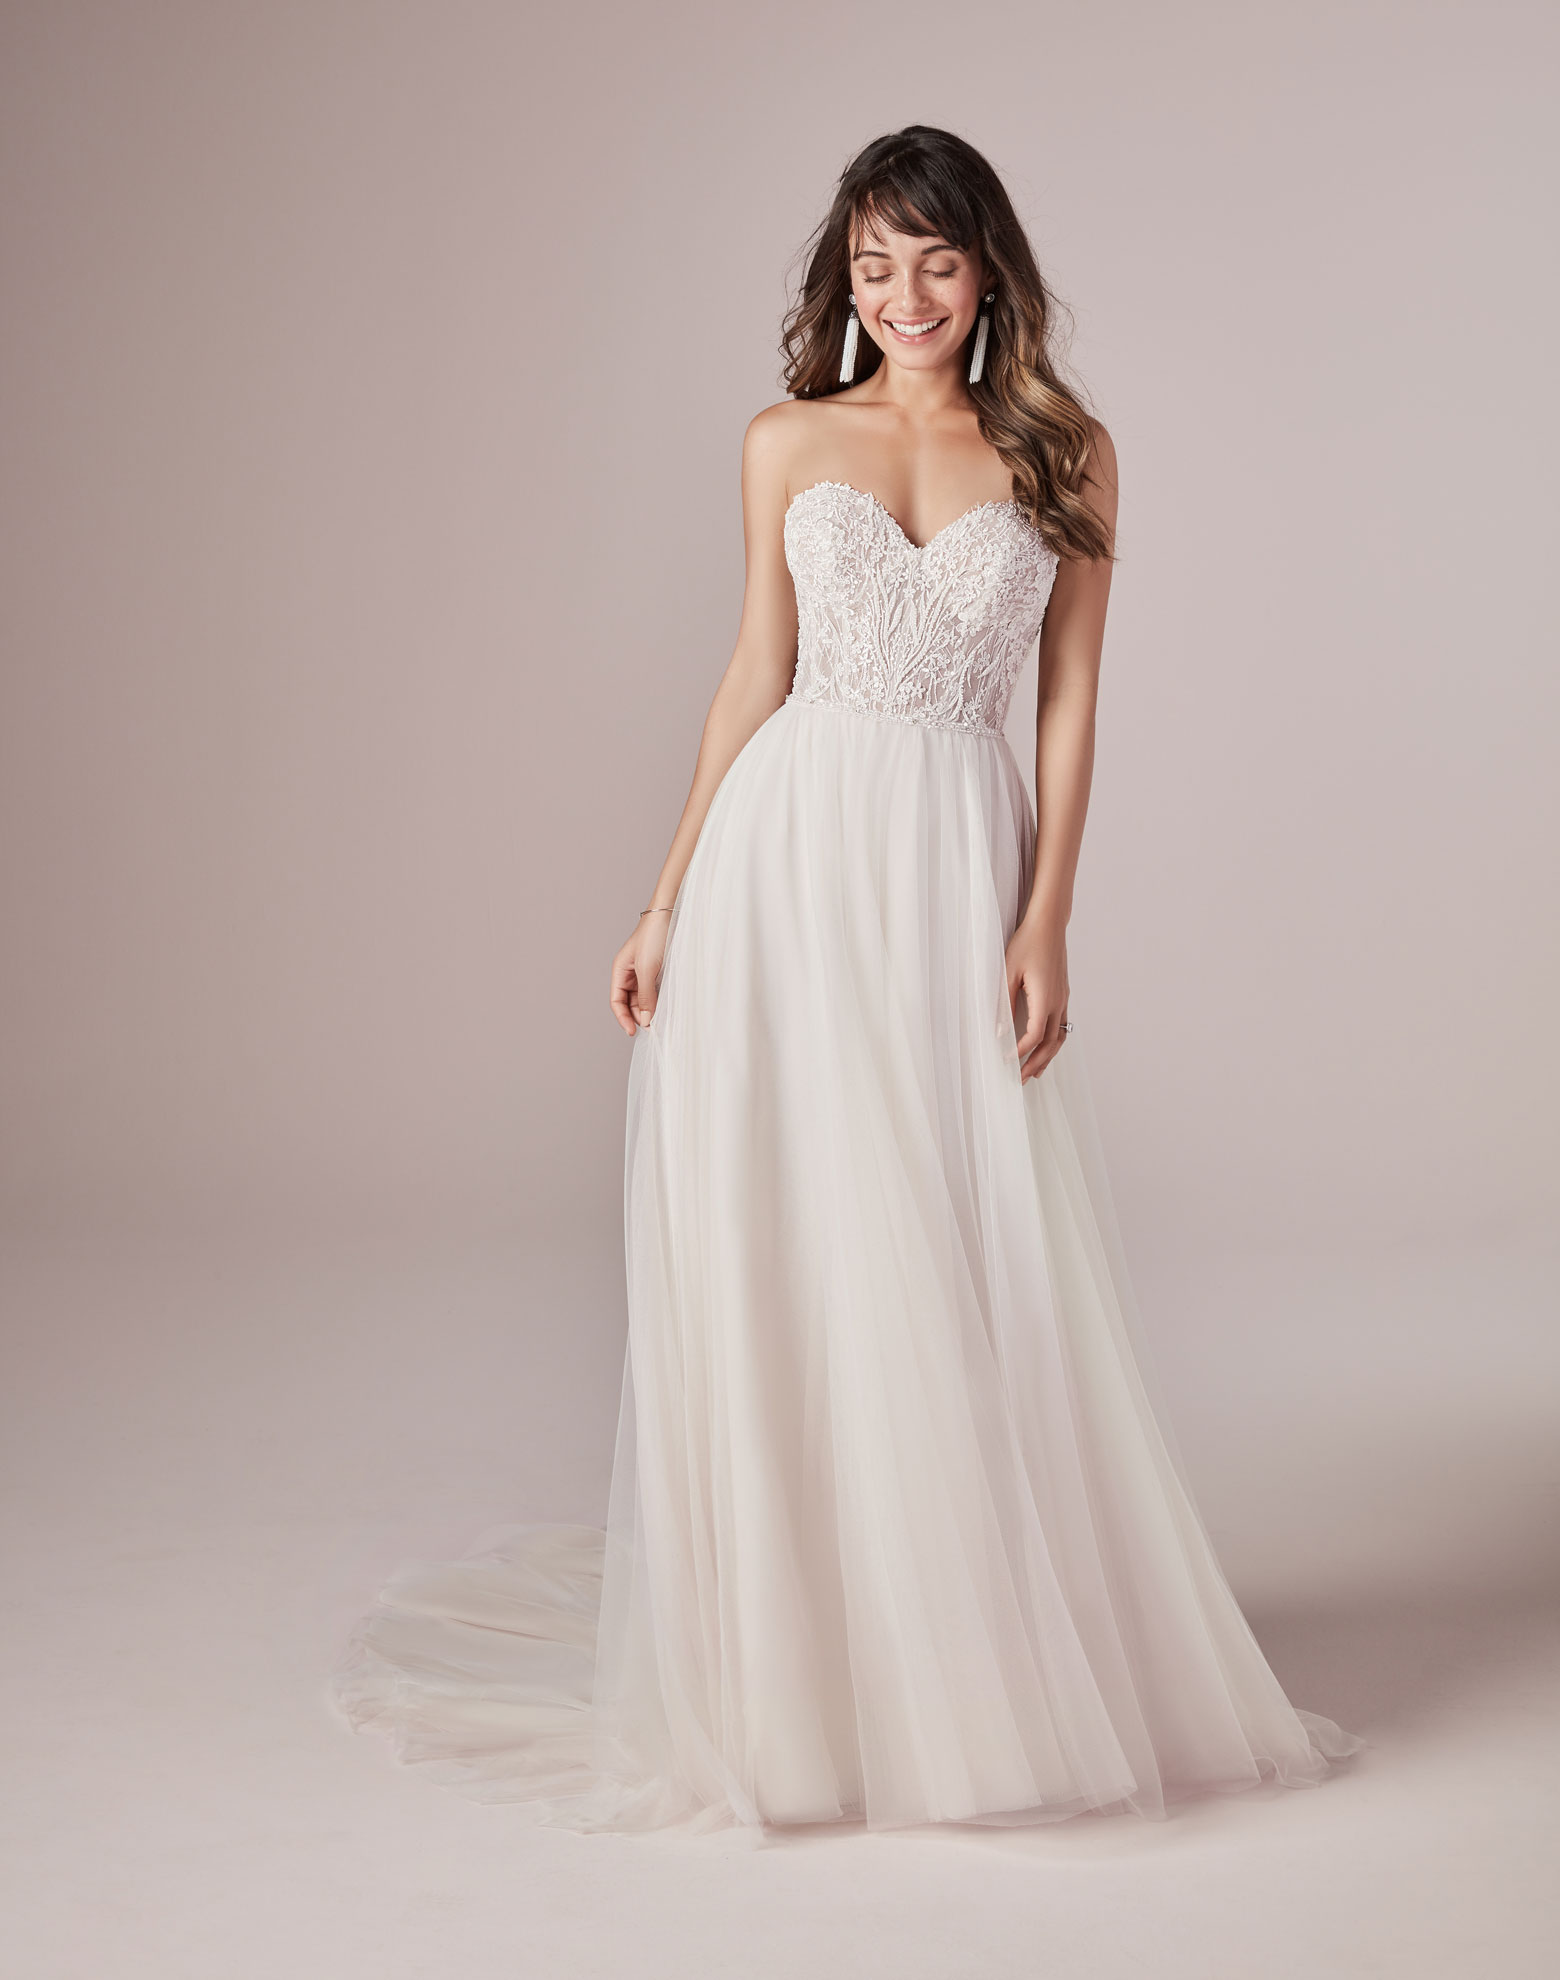 Rebecca Ingram, Nia - A Light, Airy, & Romantic Gown